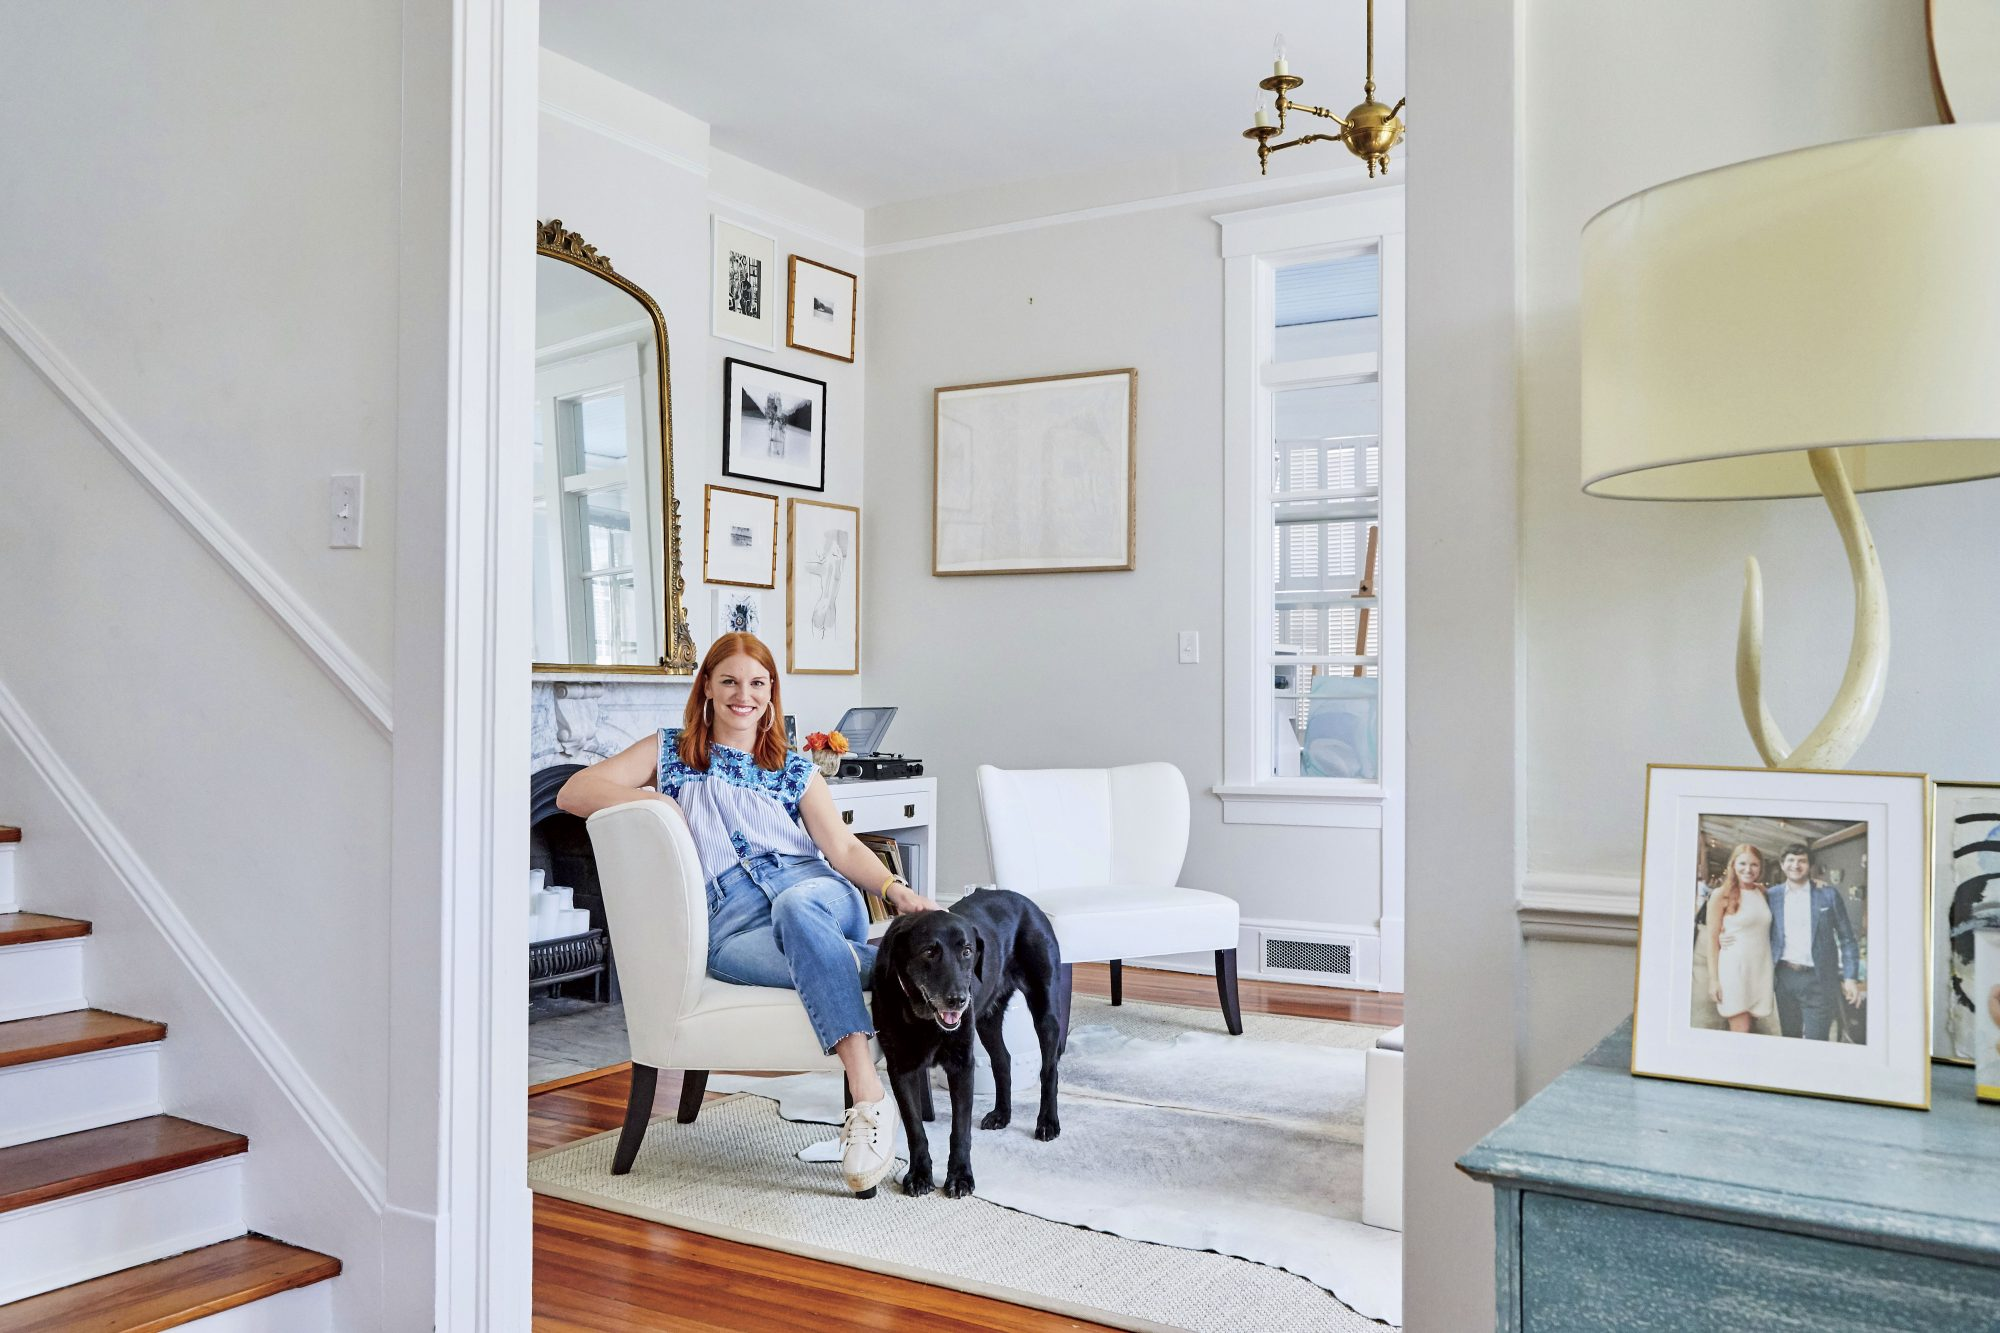 Liz Eichholz at Home with Dog